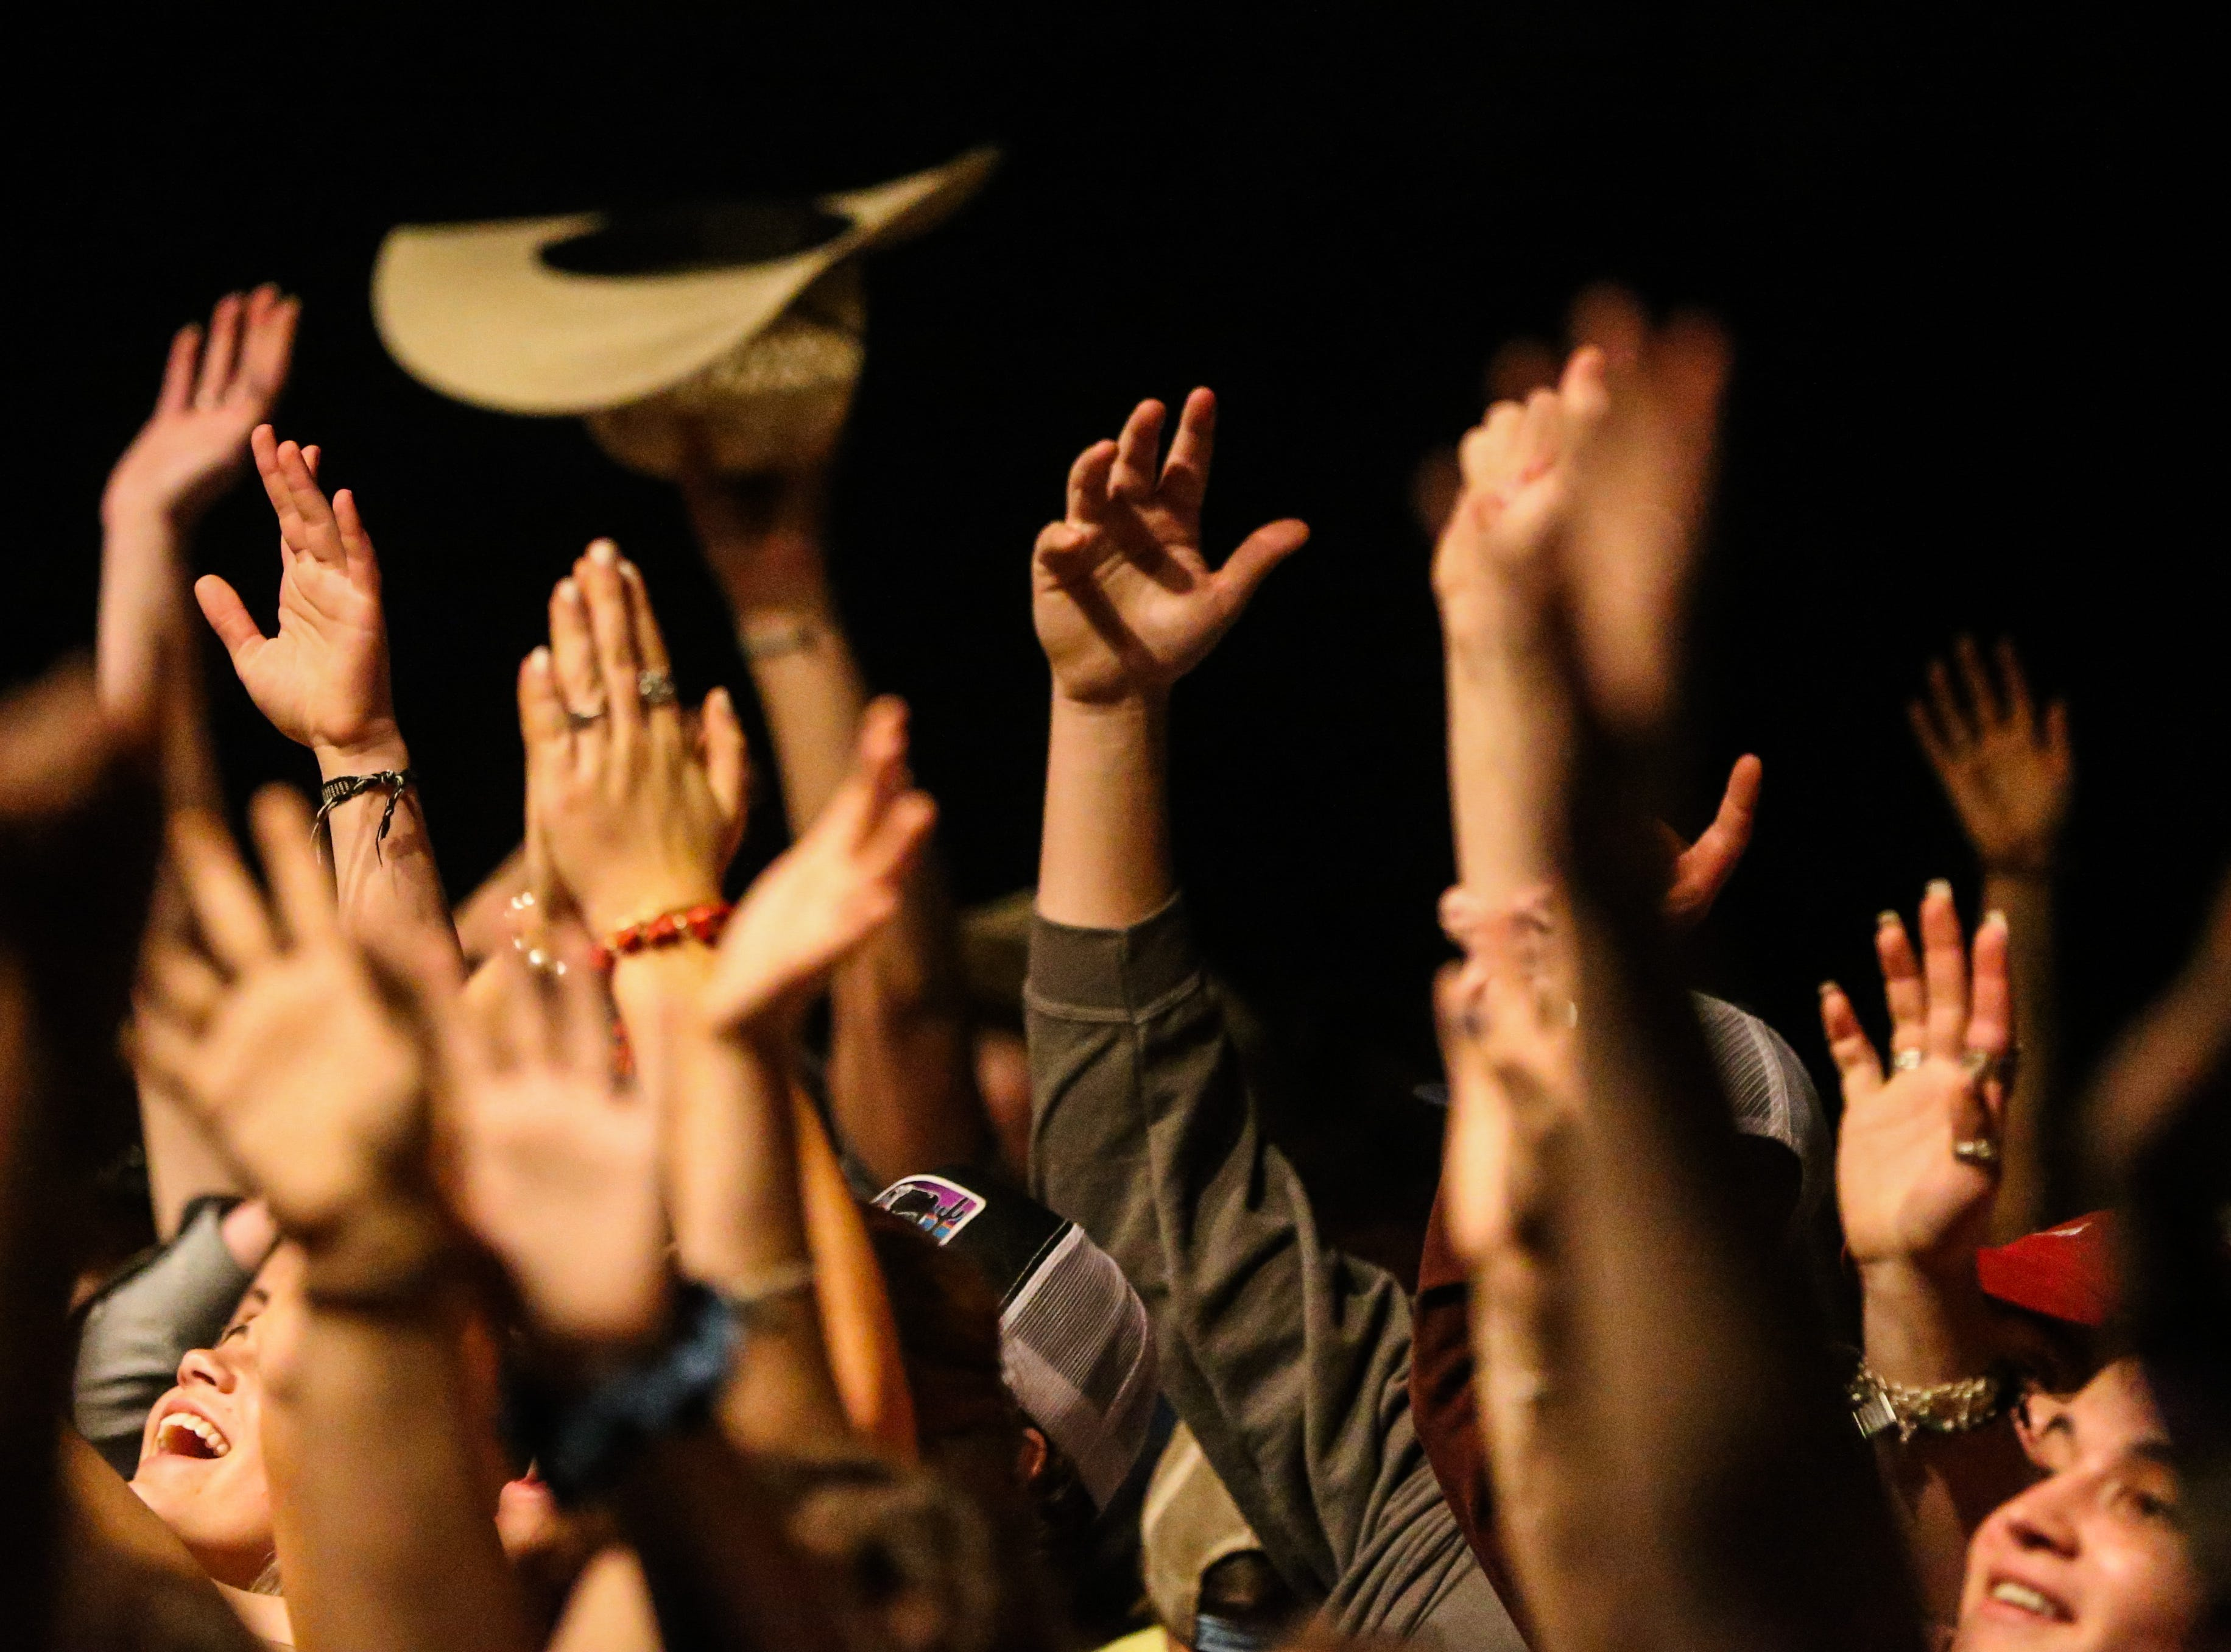 Concert goers cheer on for Flatland Cavalry during Wild West Fest Friday, March 1, 2019, at the Bill Aylor Sr. Memorial RiverStage.